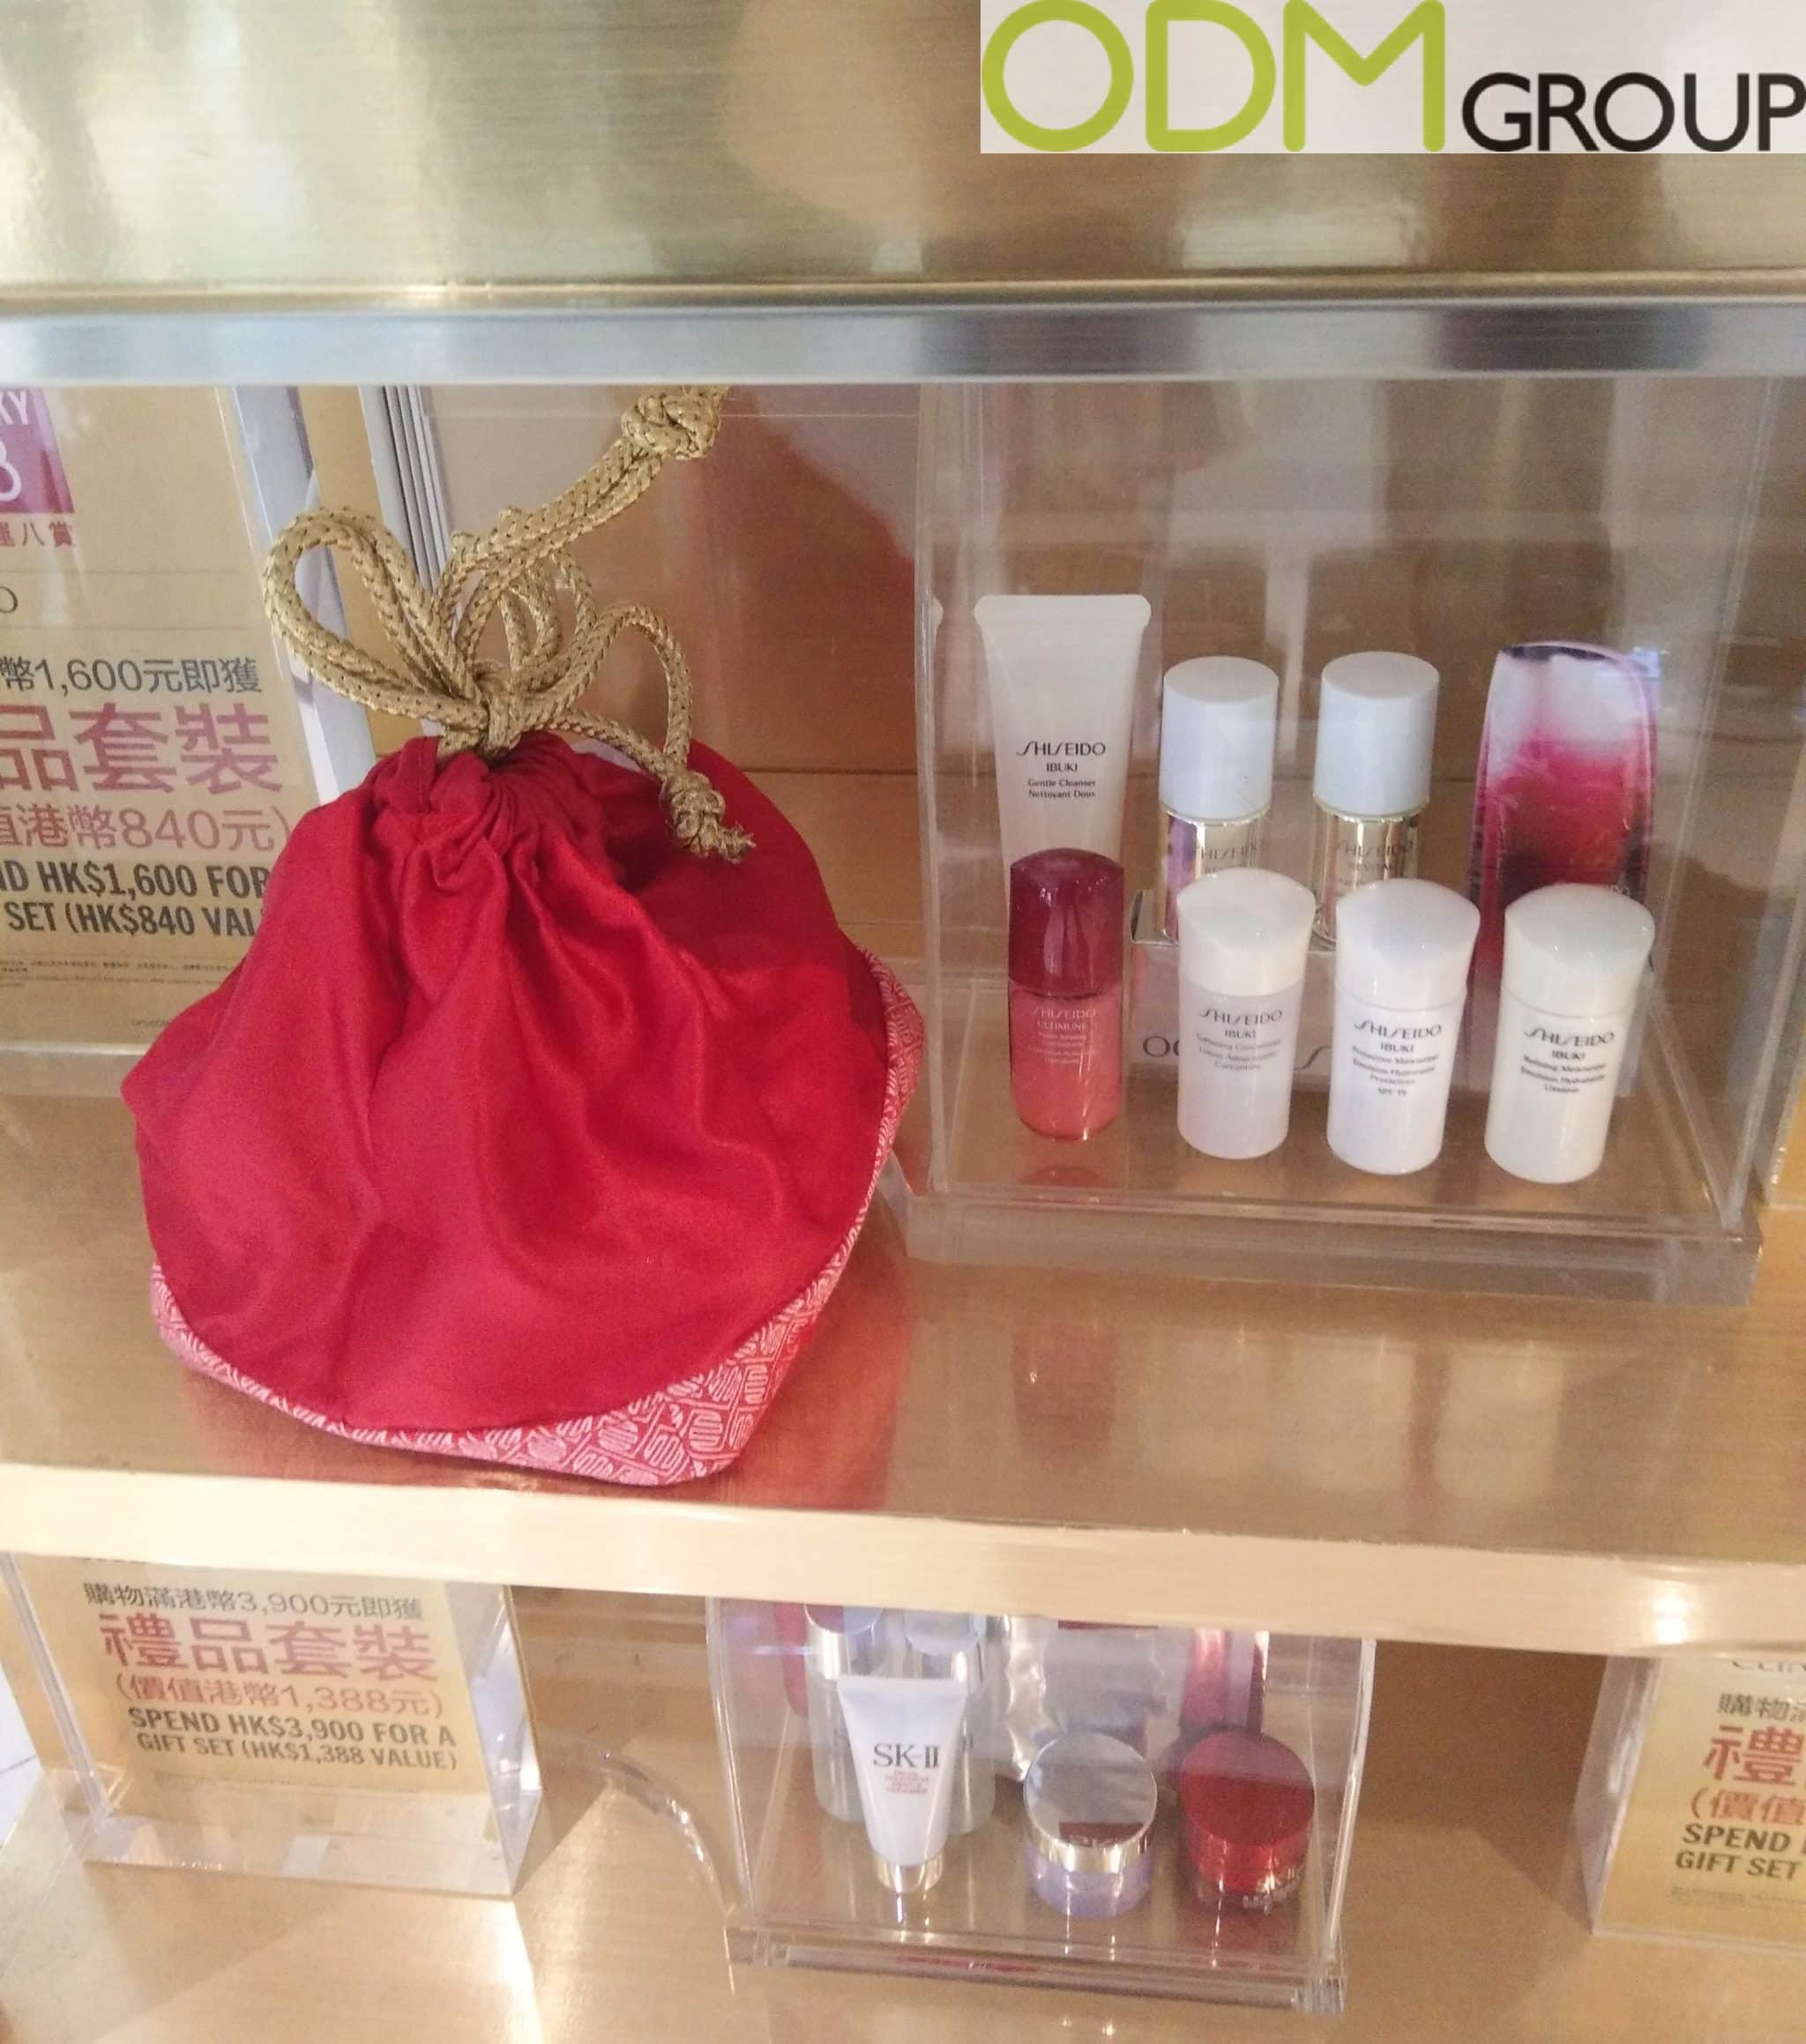 Shiseido In Store Marketing offers Cosmetics Pouch with Purchase